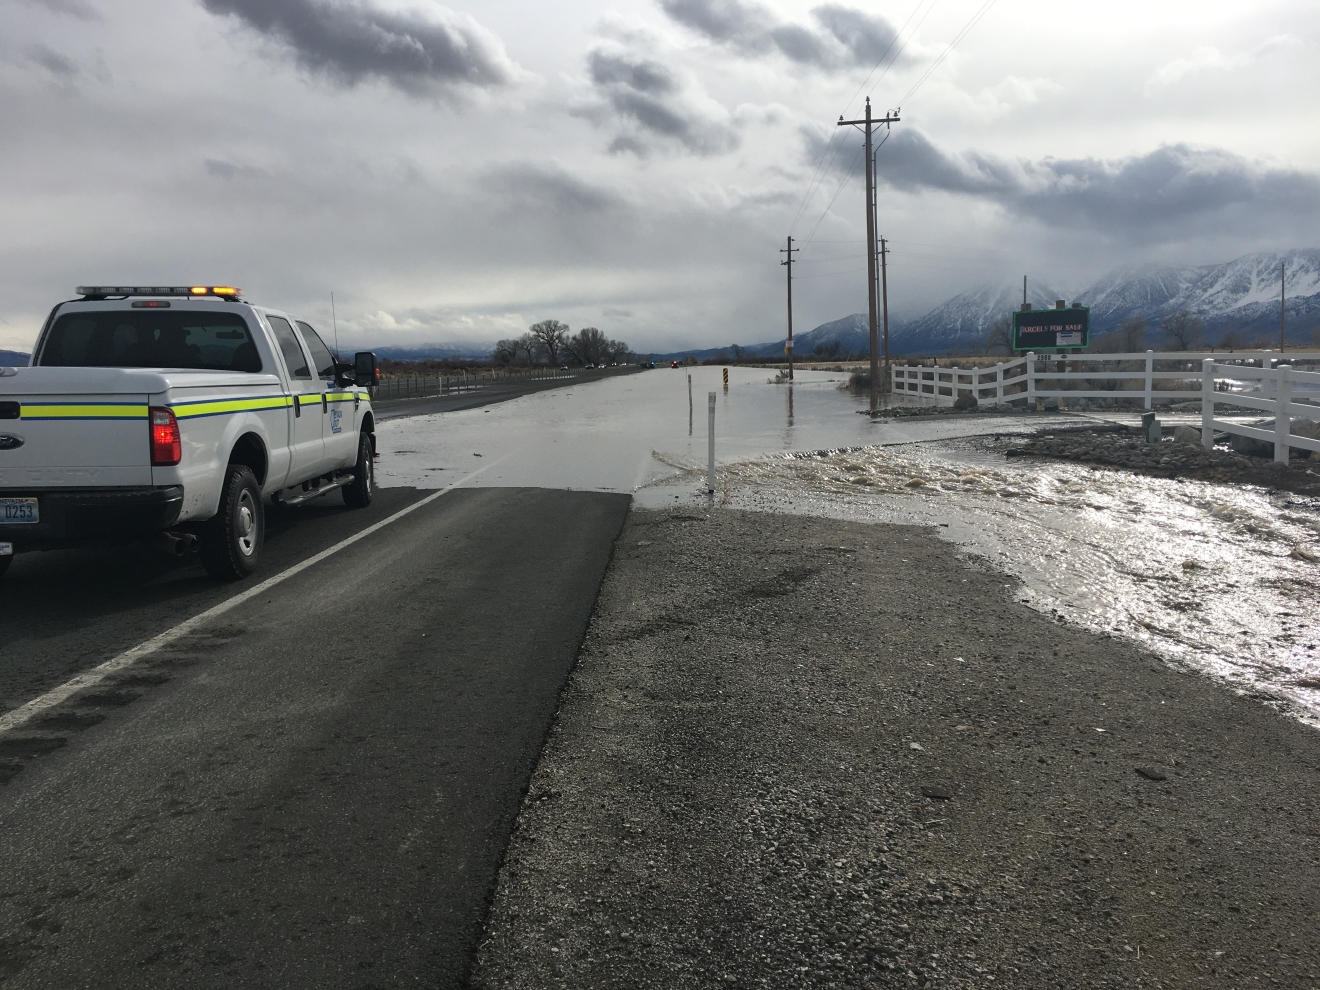 One southbound lane of U.S. 395 at the Carson River just south of Carson City is closed due to water on the roadway.